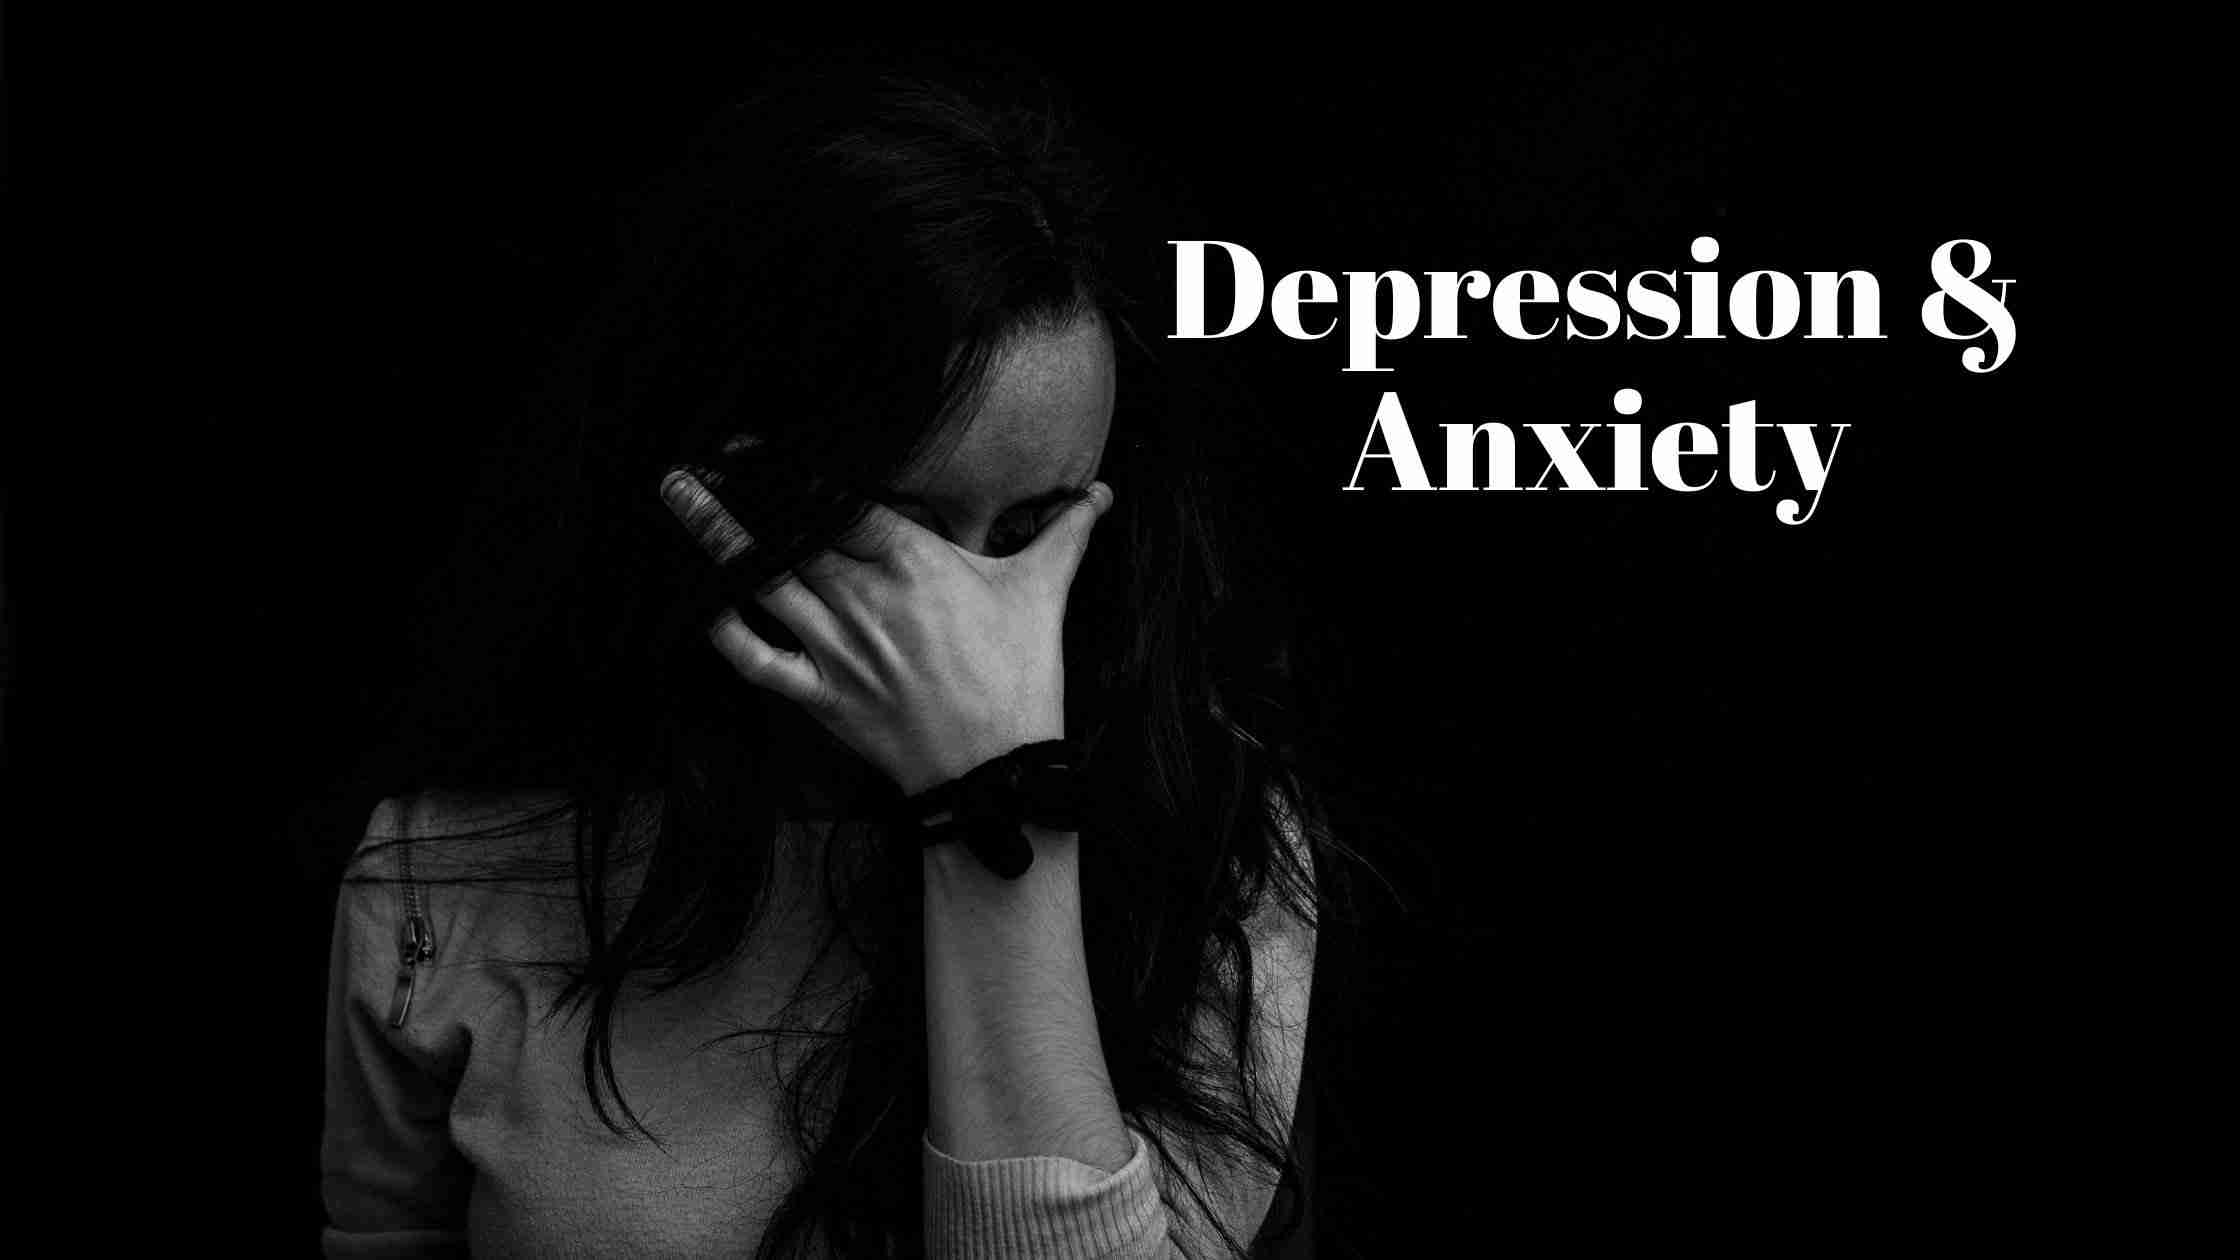 CBD for depression and anxiety